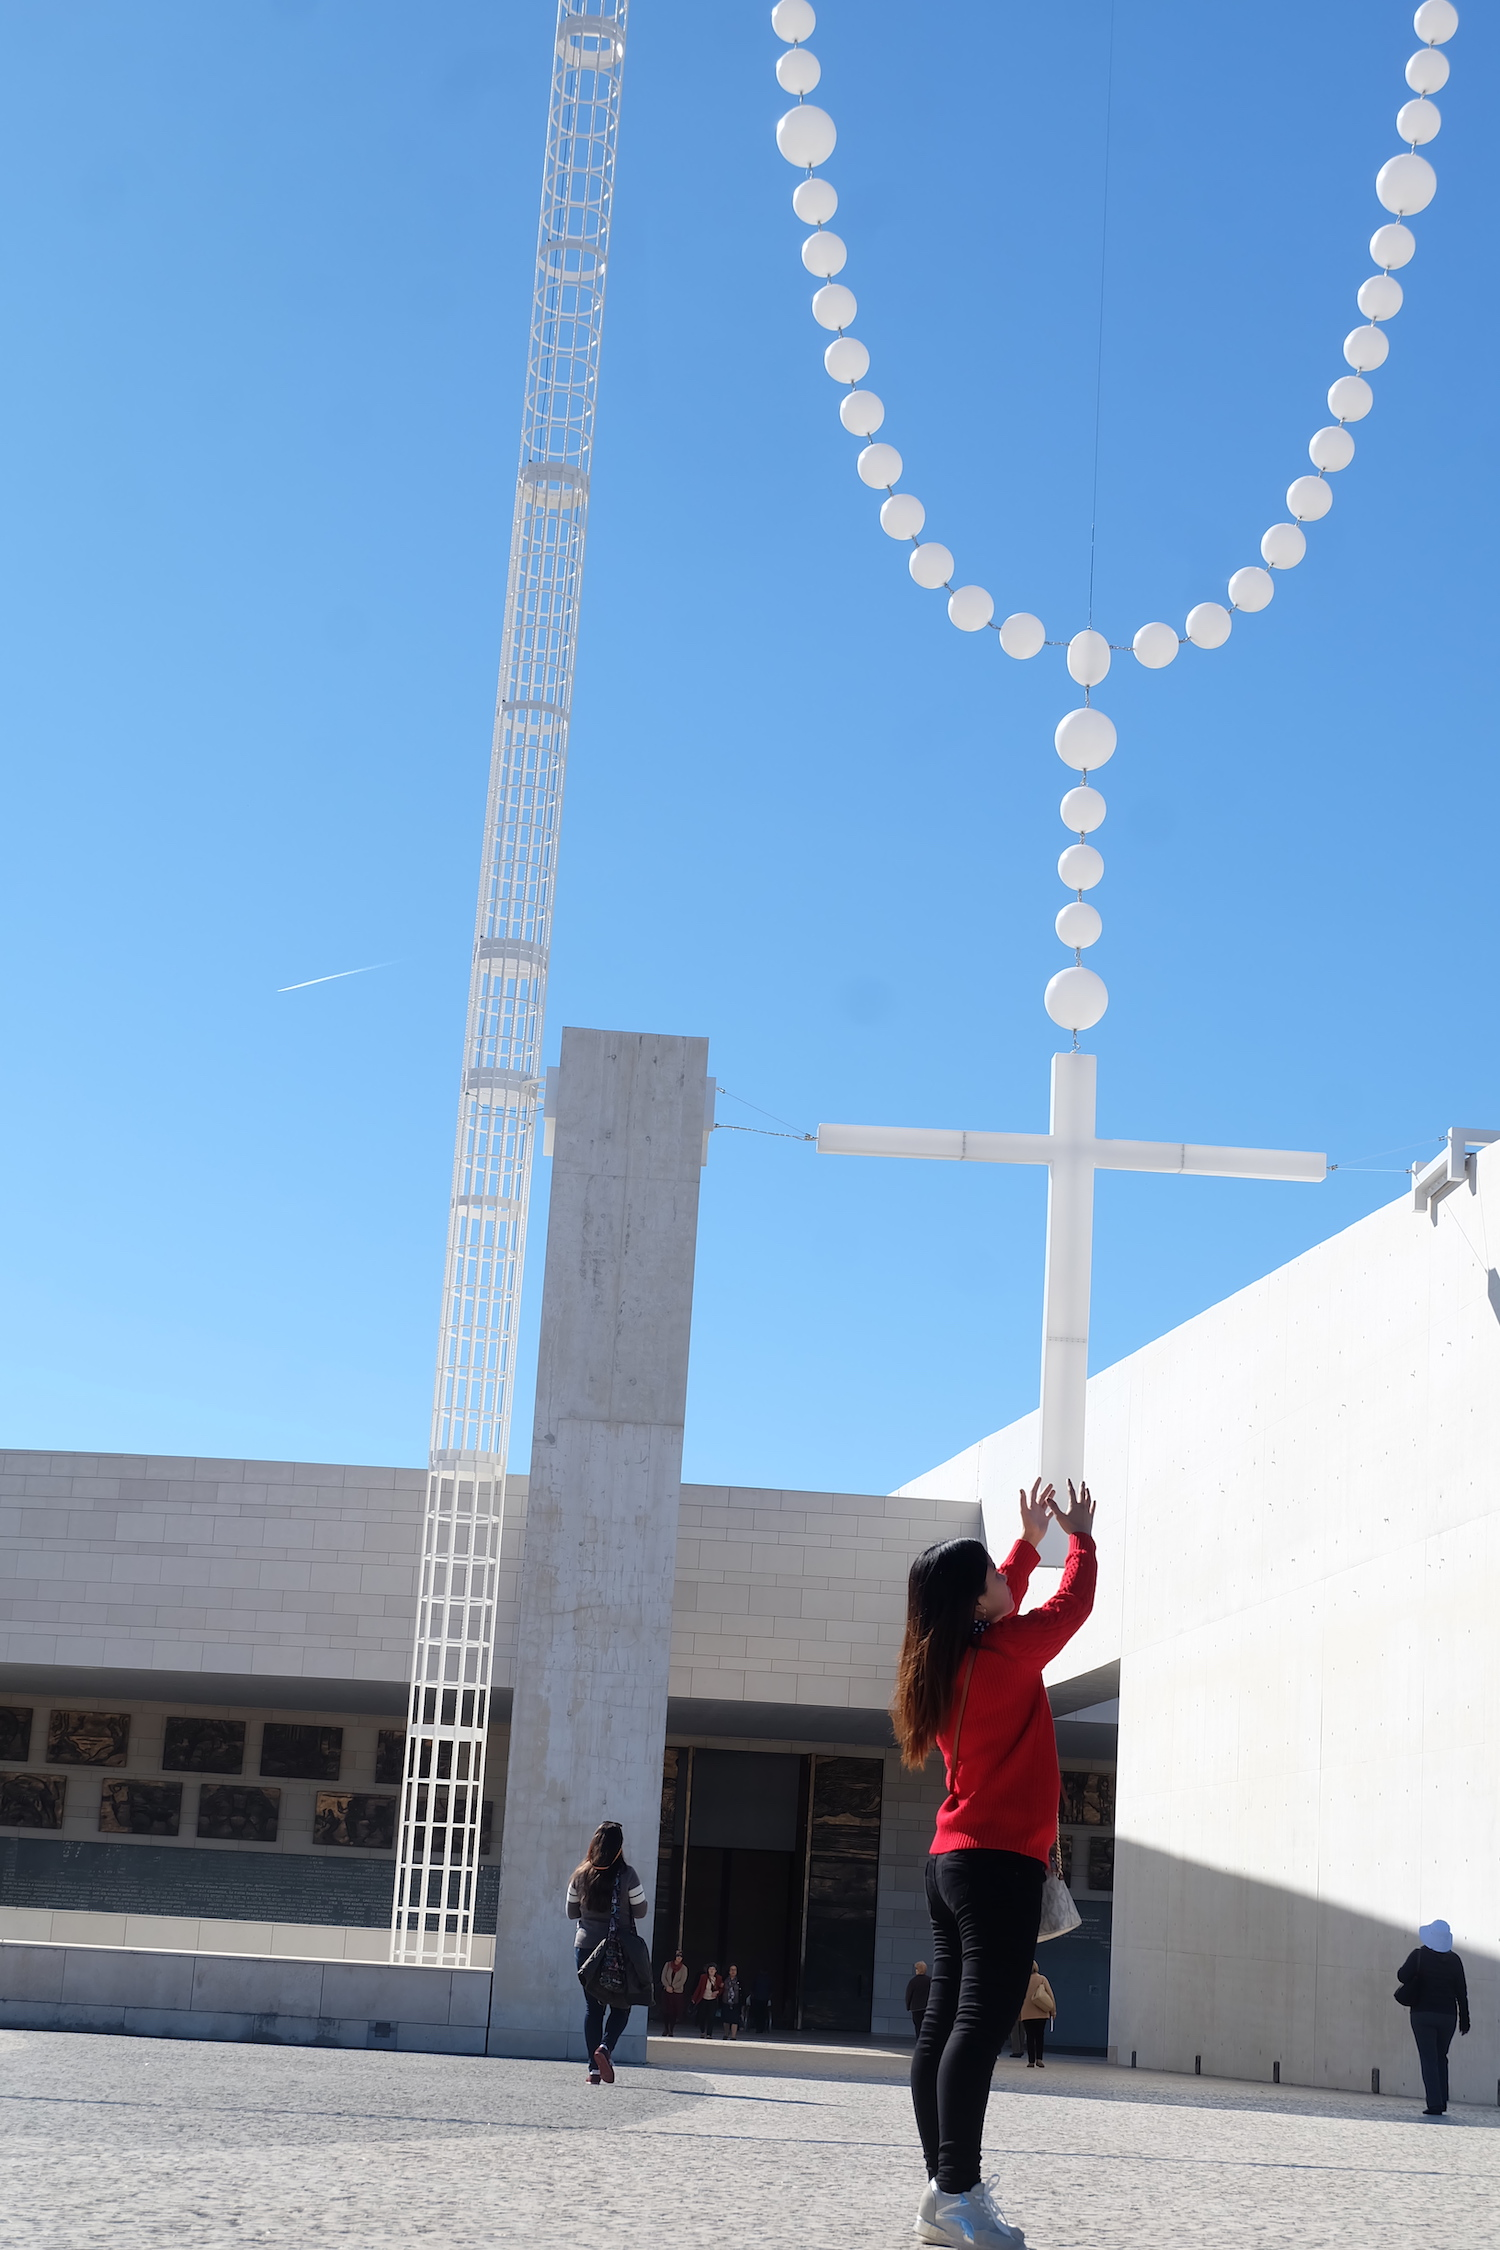 Fátima Shrine: A Journey to the Altar of the World